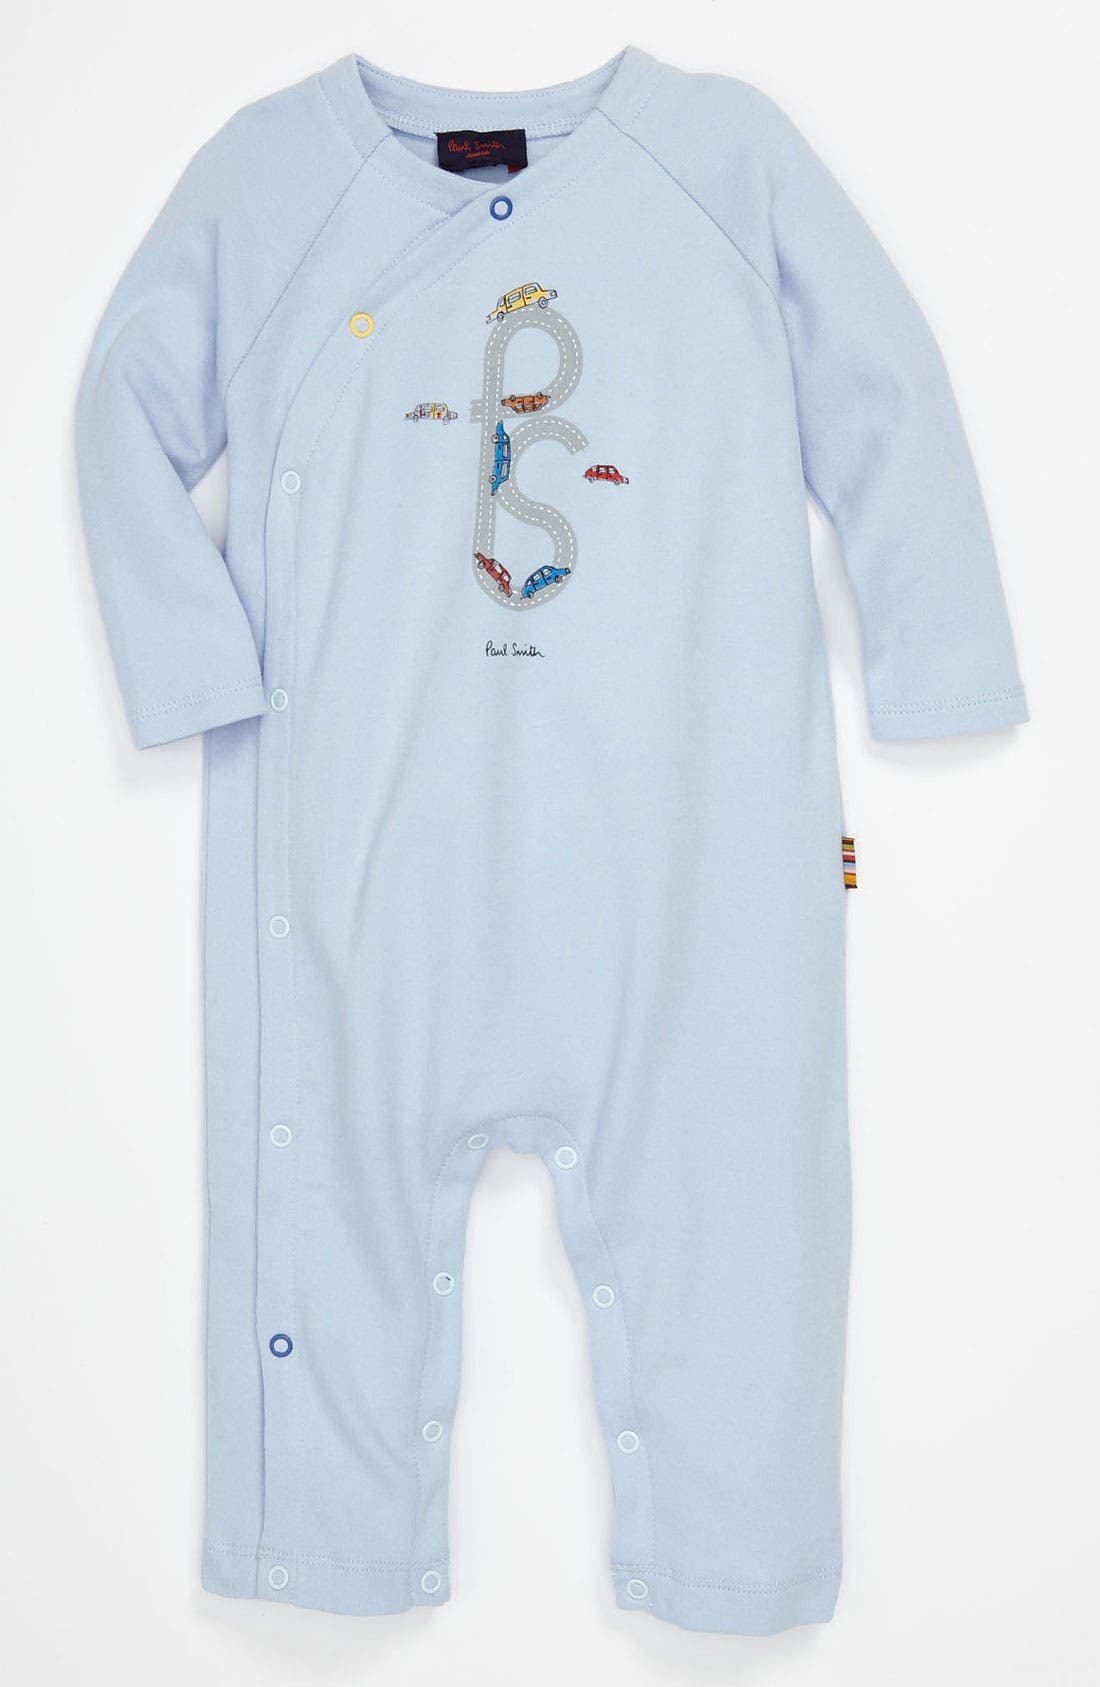 Main Image - Paul Smith Junior Coveralls (Baby)